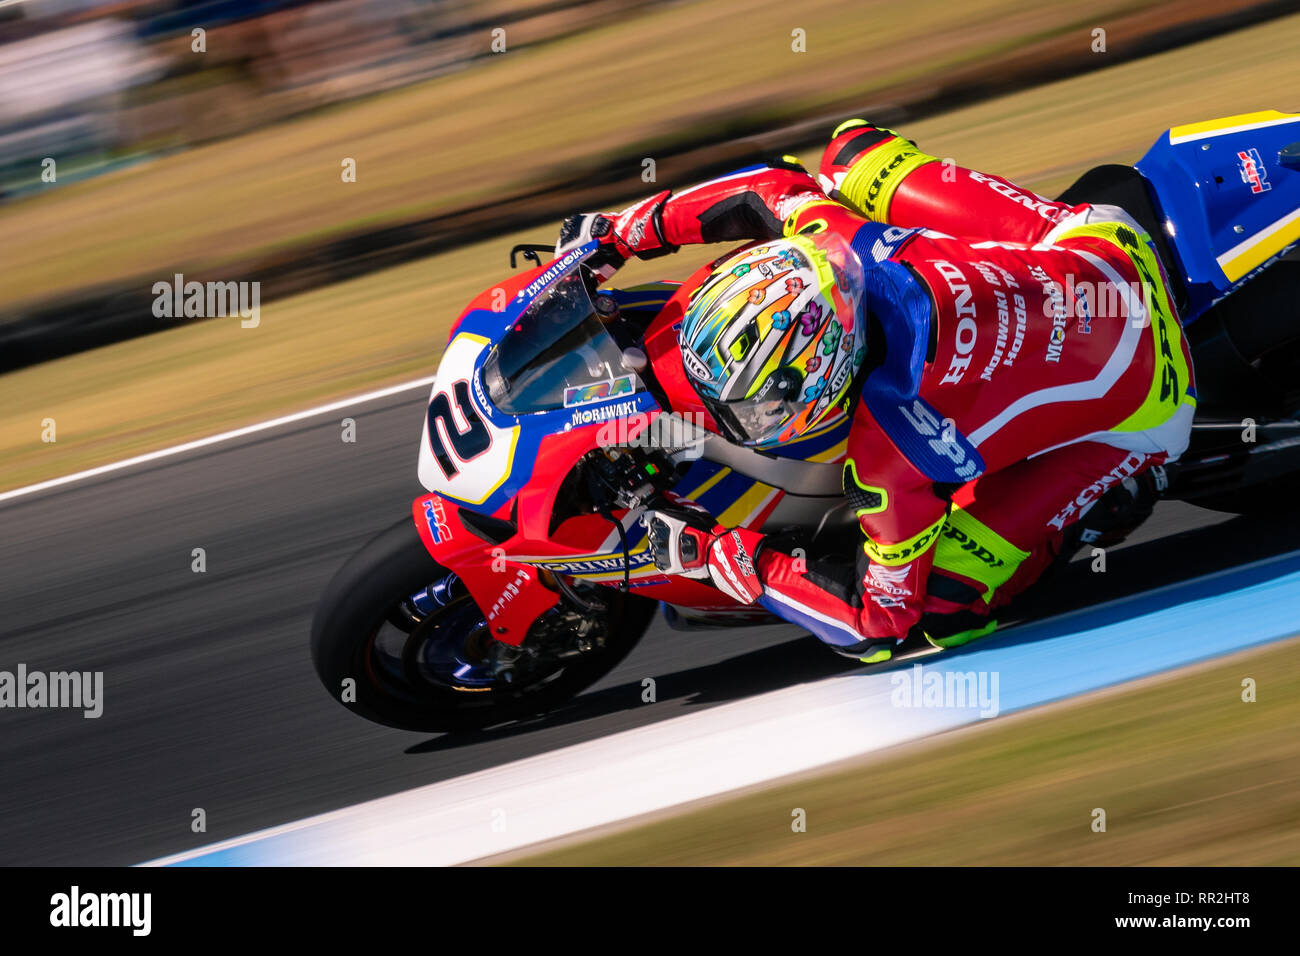 Melbourne, Australia. 24th Feb, 2019. MELBOURNE, AUSTRALIA - FEBRUARY 24: Leon Camier 2 riding for Red Bull Honda World Superbike Team during the 2019 MOTUL FIM Superbike World Championship at Phillip Island, Australia on February 24 2019. Credit: Dave Hewison Sports/Alamy Live News Stock Photo